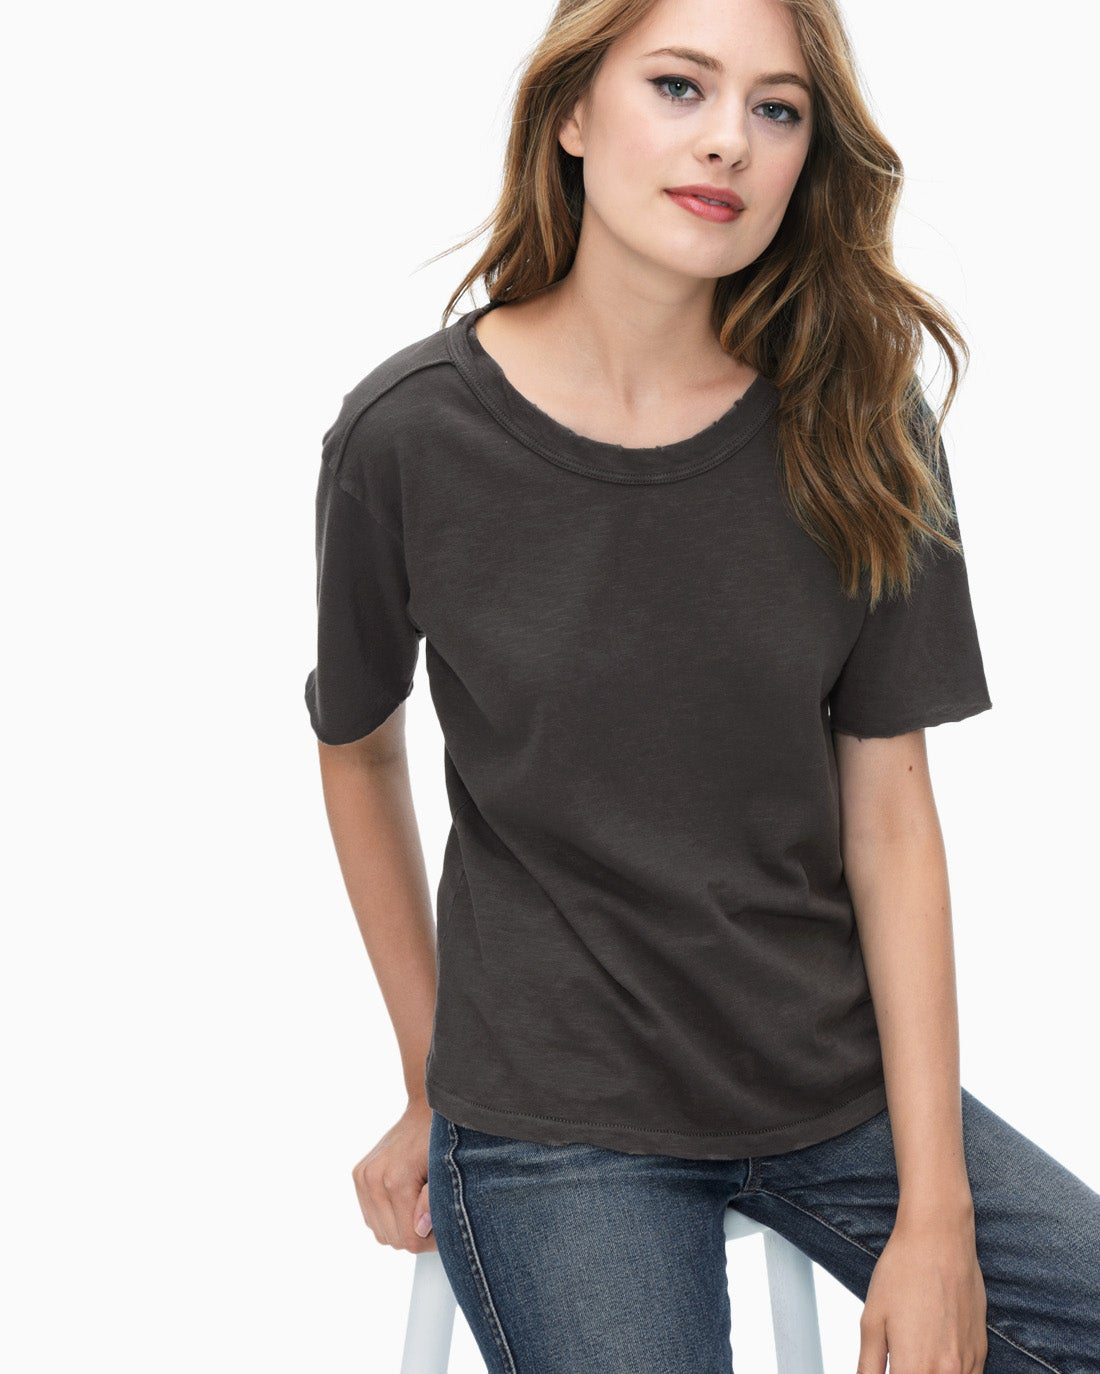 Splendid Women's Cotton Slub Tee Shirt